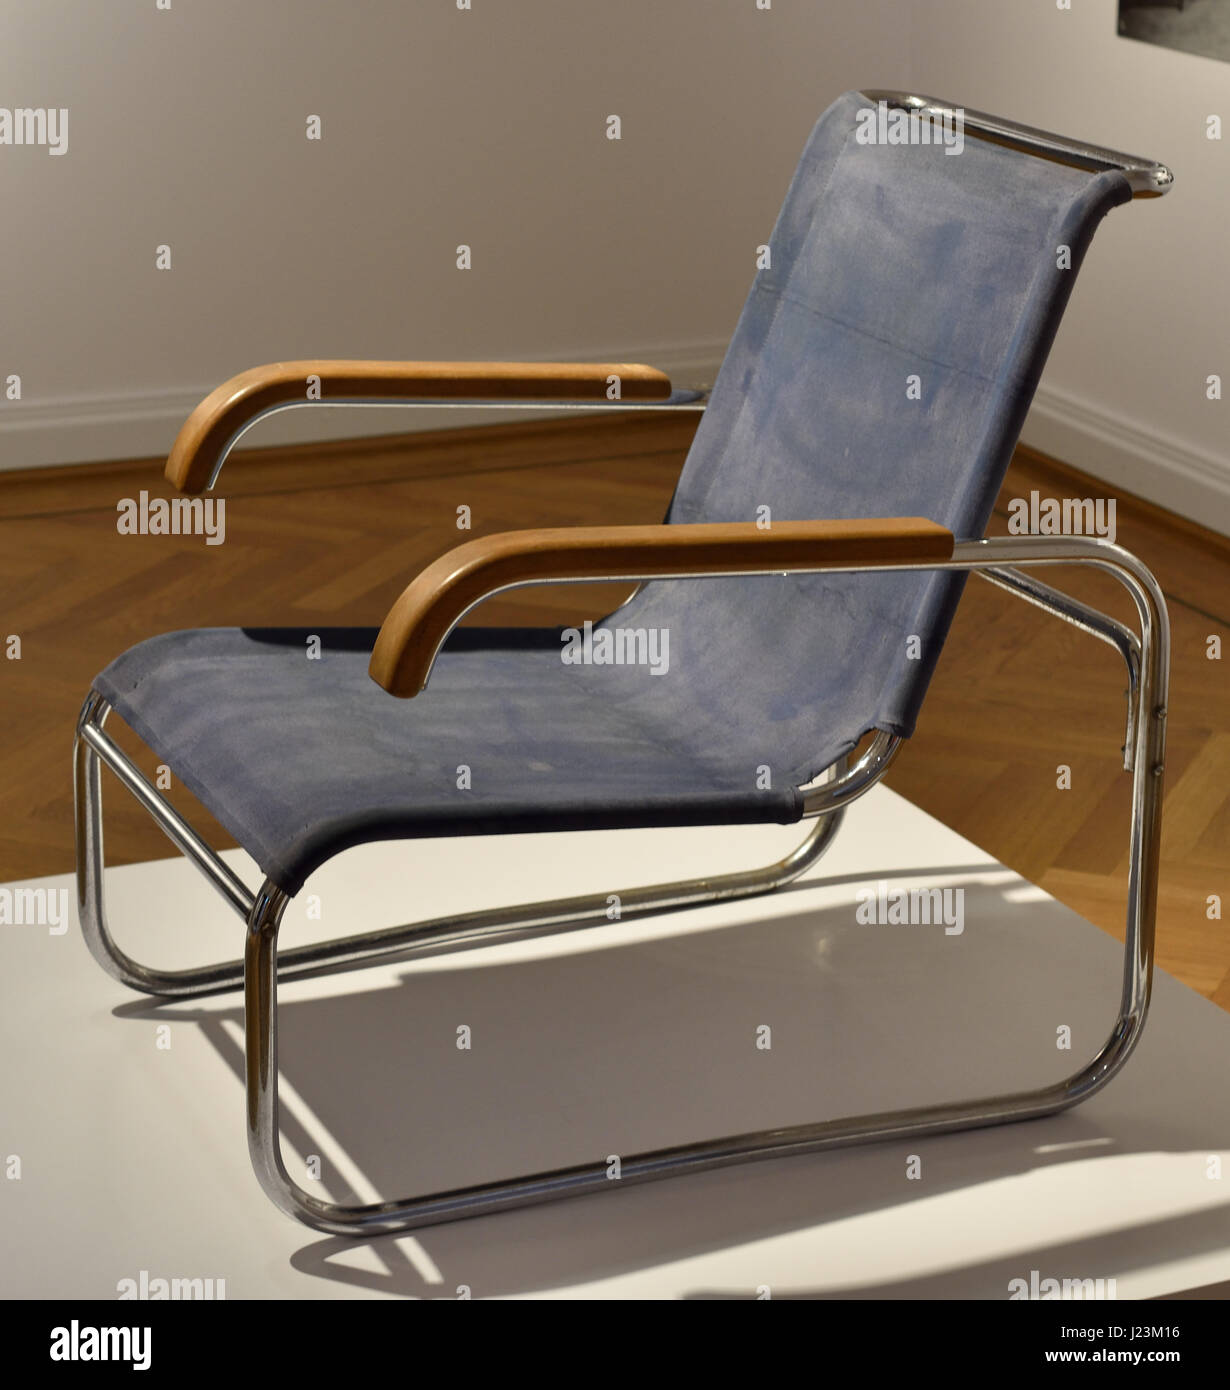 Chair B35 1928 Designed by Marcel Breuer Version Thonet Mundus AG 1931 German Germany & Thonet Chairs Stock Photos u0026 Thonet Chairs Stock Images - Alamy